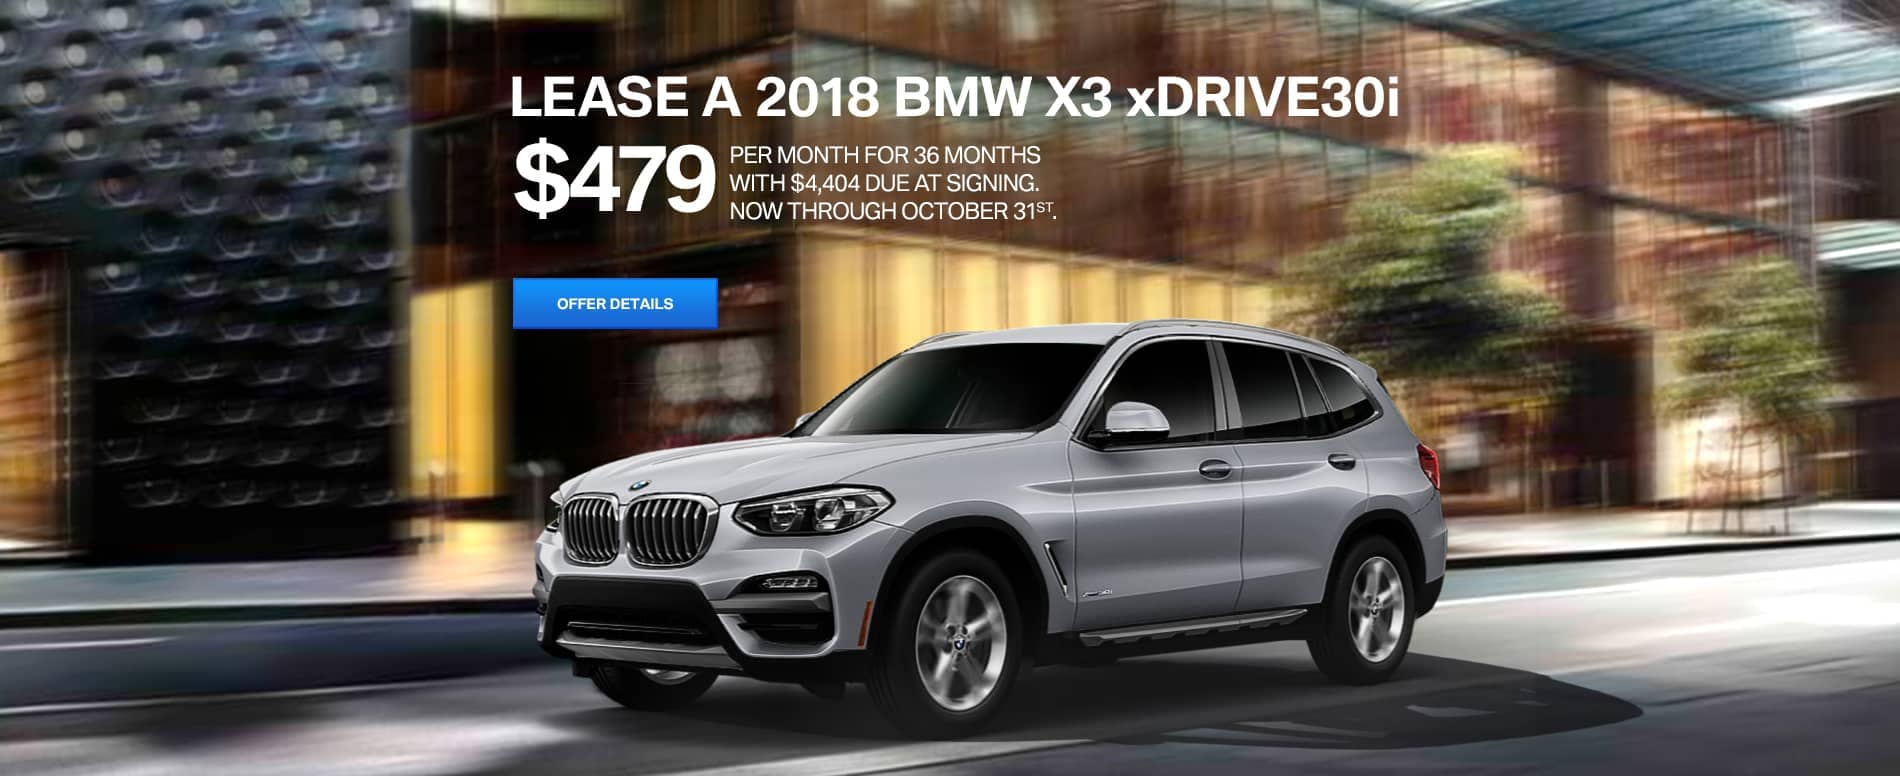 2018_X3_xDrive30i_National_$479